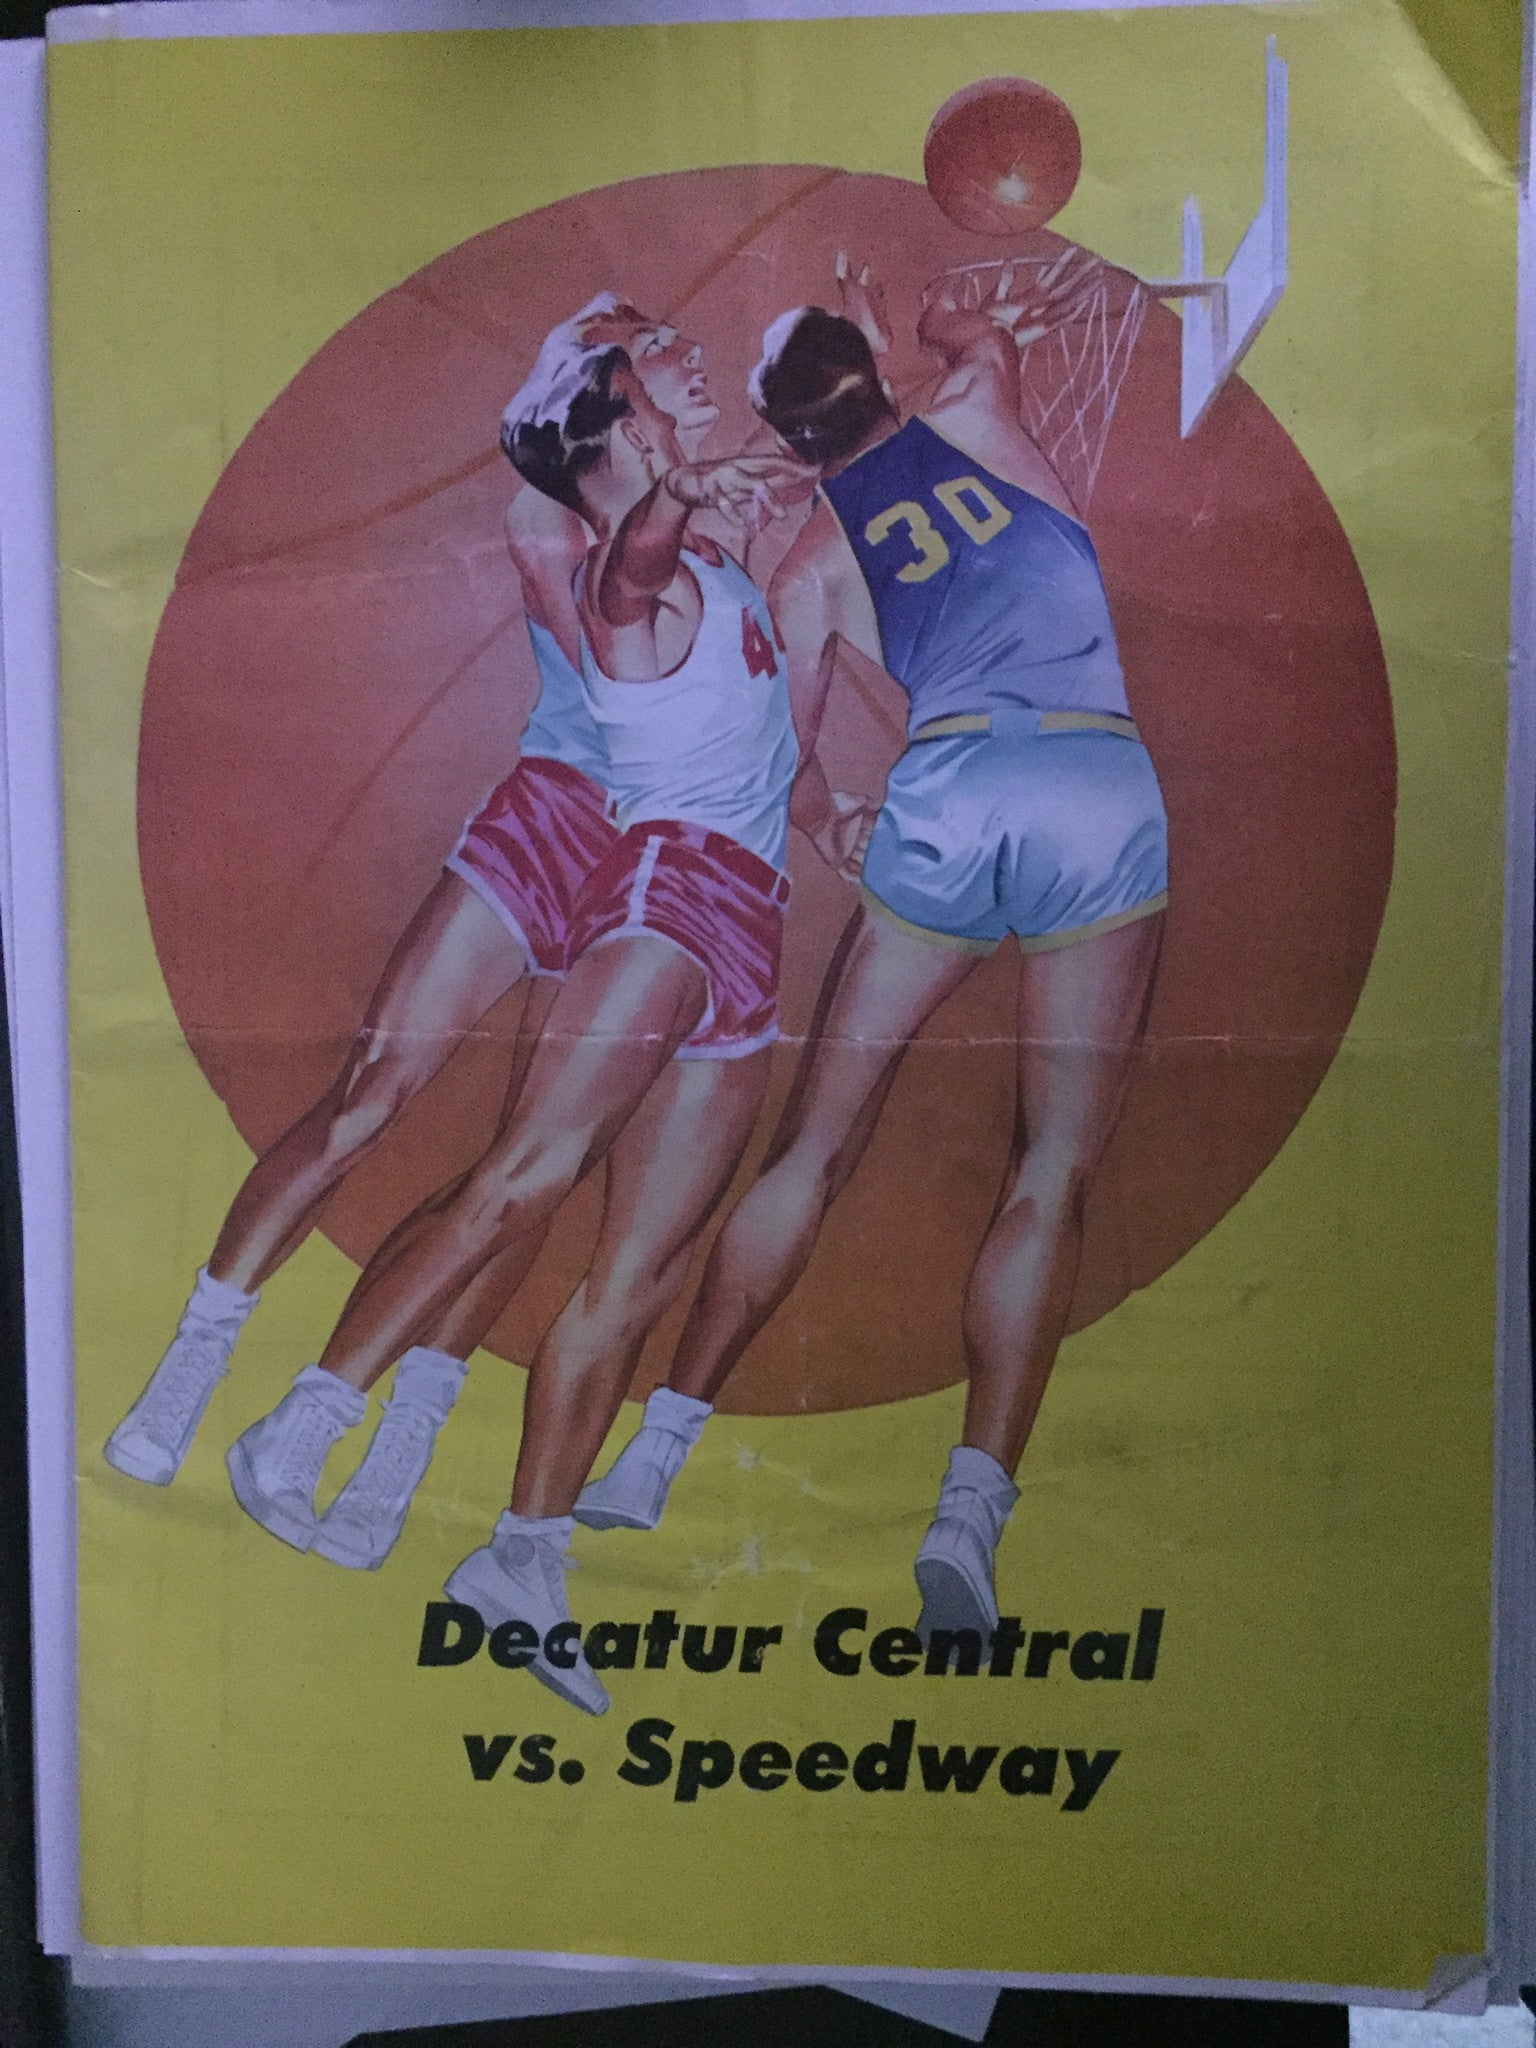 1951 Decatur Central vs Speedway Indiana High School Basketball Program - Vintage Indy Sports